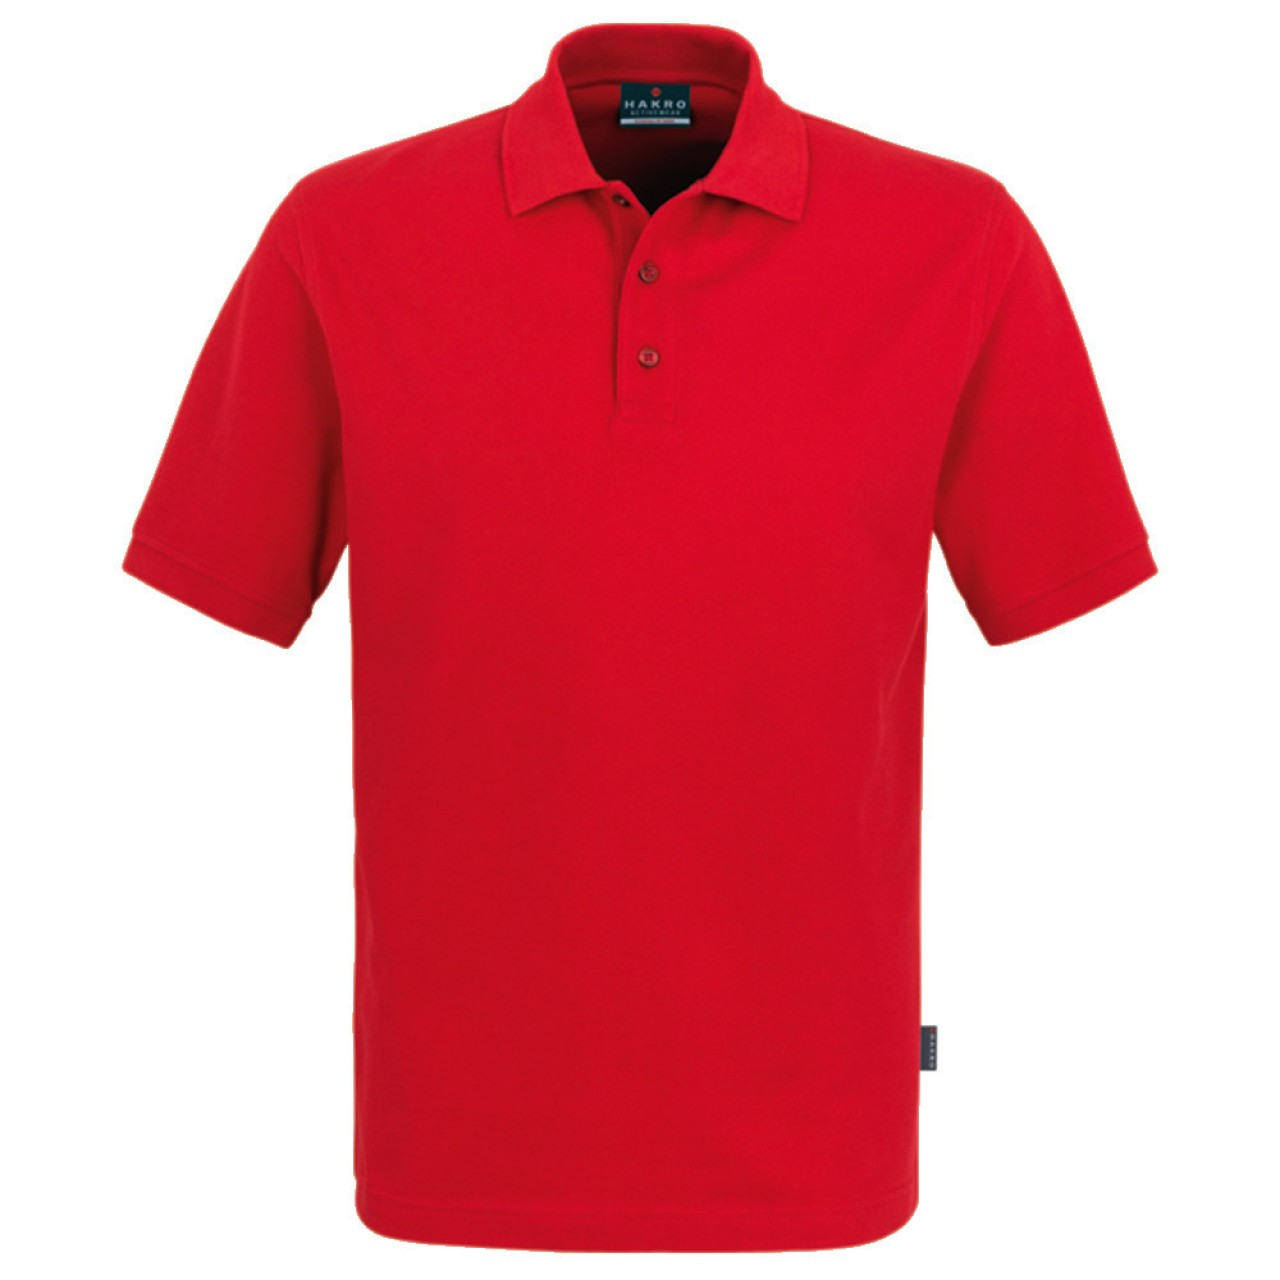 Herren Polo-Shirt Top rot